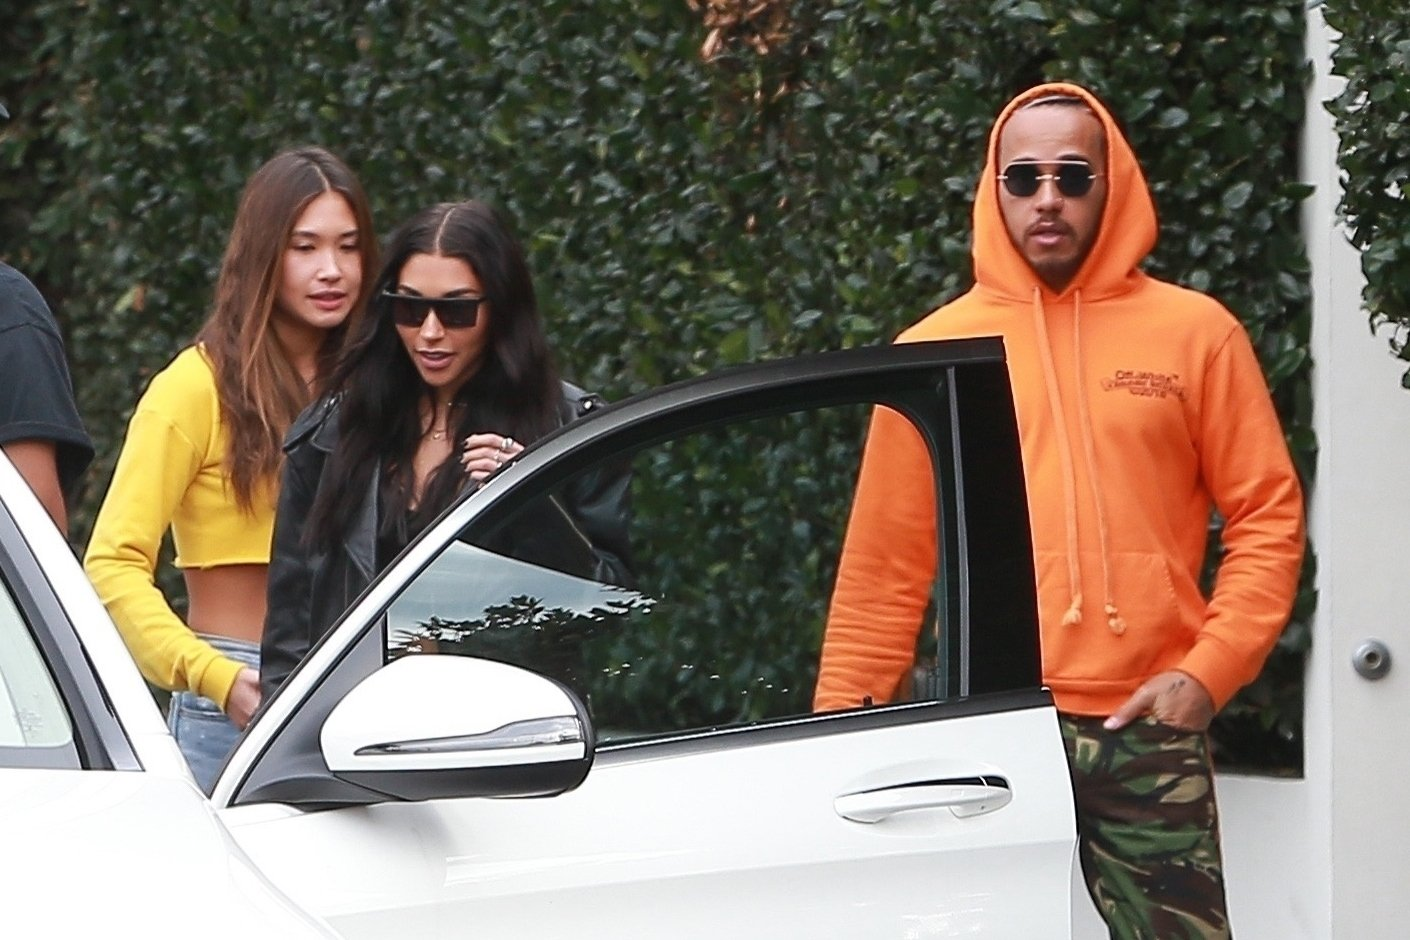 Lewis Hamilton is far from 'slumming' it as he leaves fancy restaurant with bunch of models